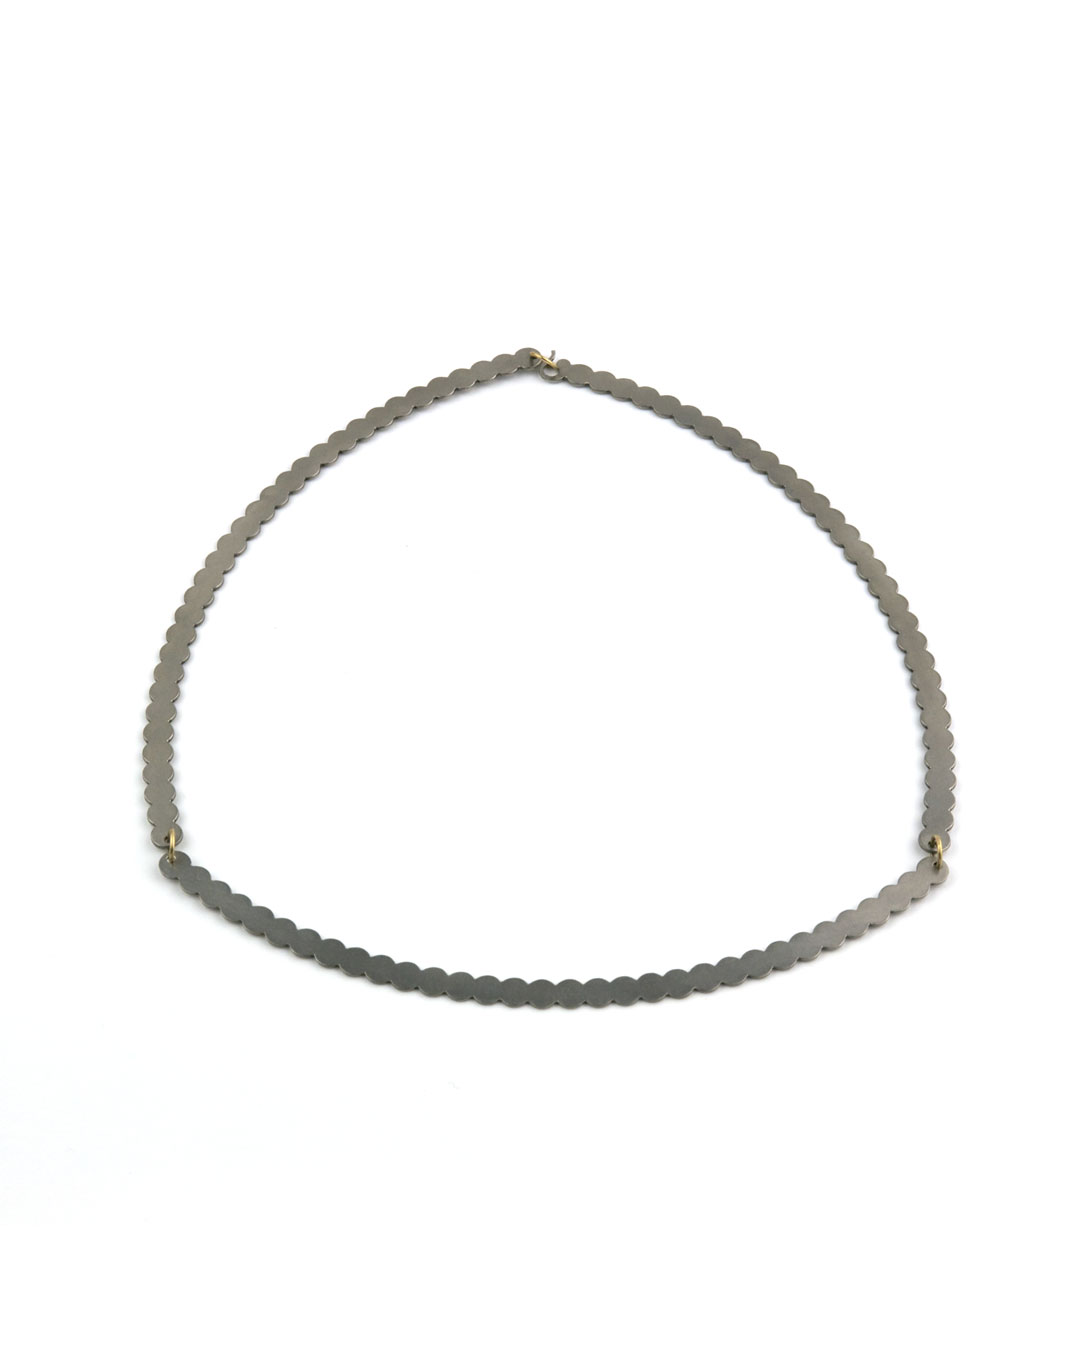 Karola Torkos, Modula, 2007, necklace; stainless steel, 8ct gold, ø 180 mm, €715